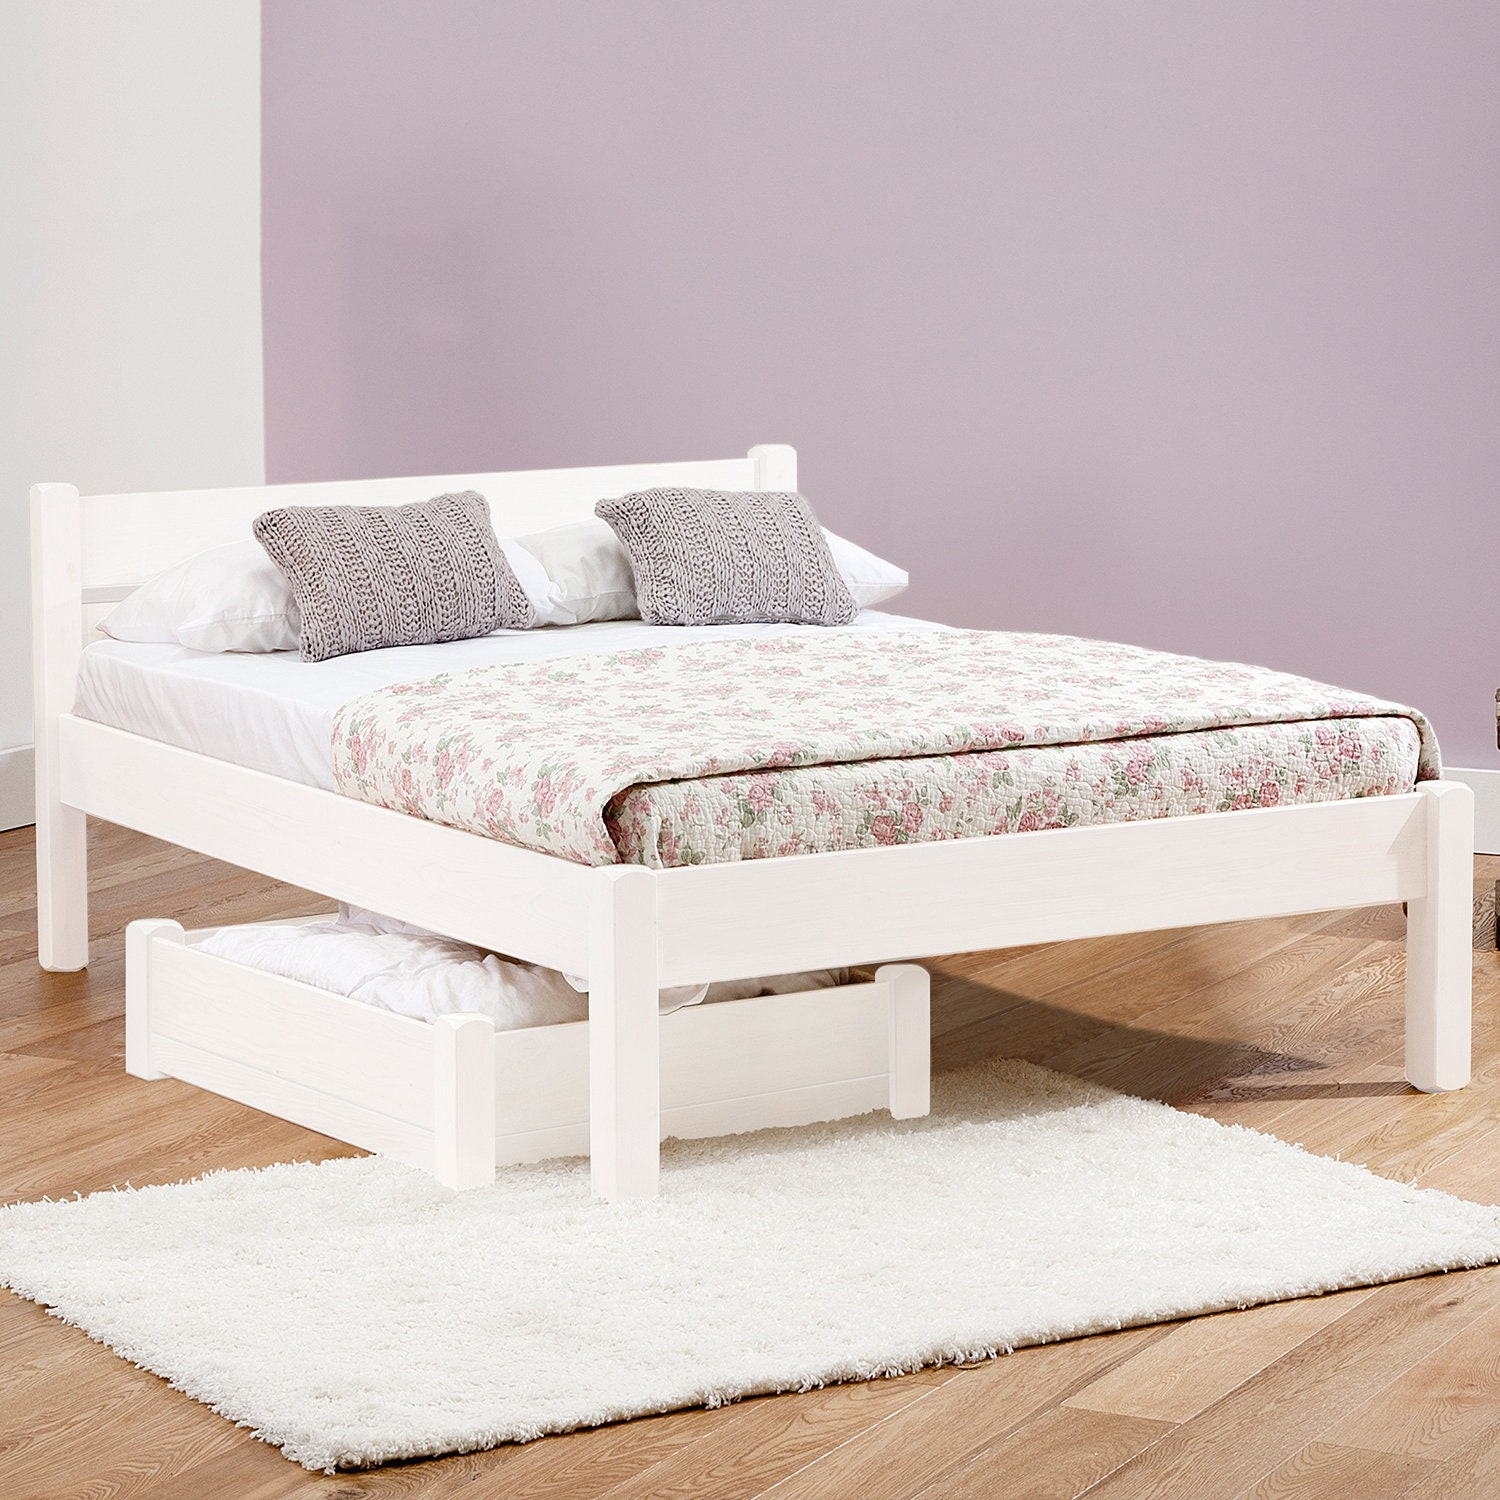 white knight wooden bed frame by get laid beds etsy. Black Bedroom Furniture Sets. Home Design Ideas